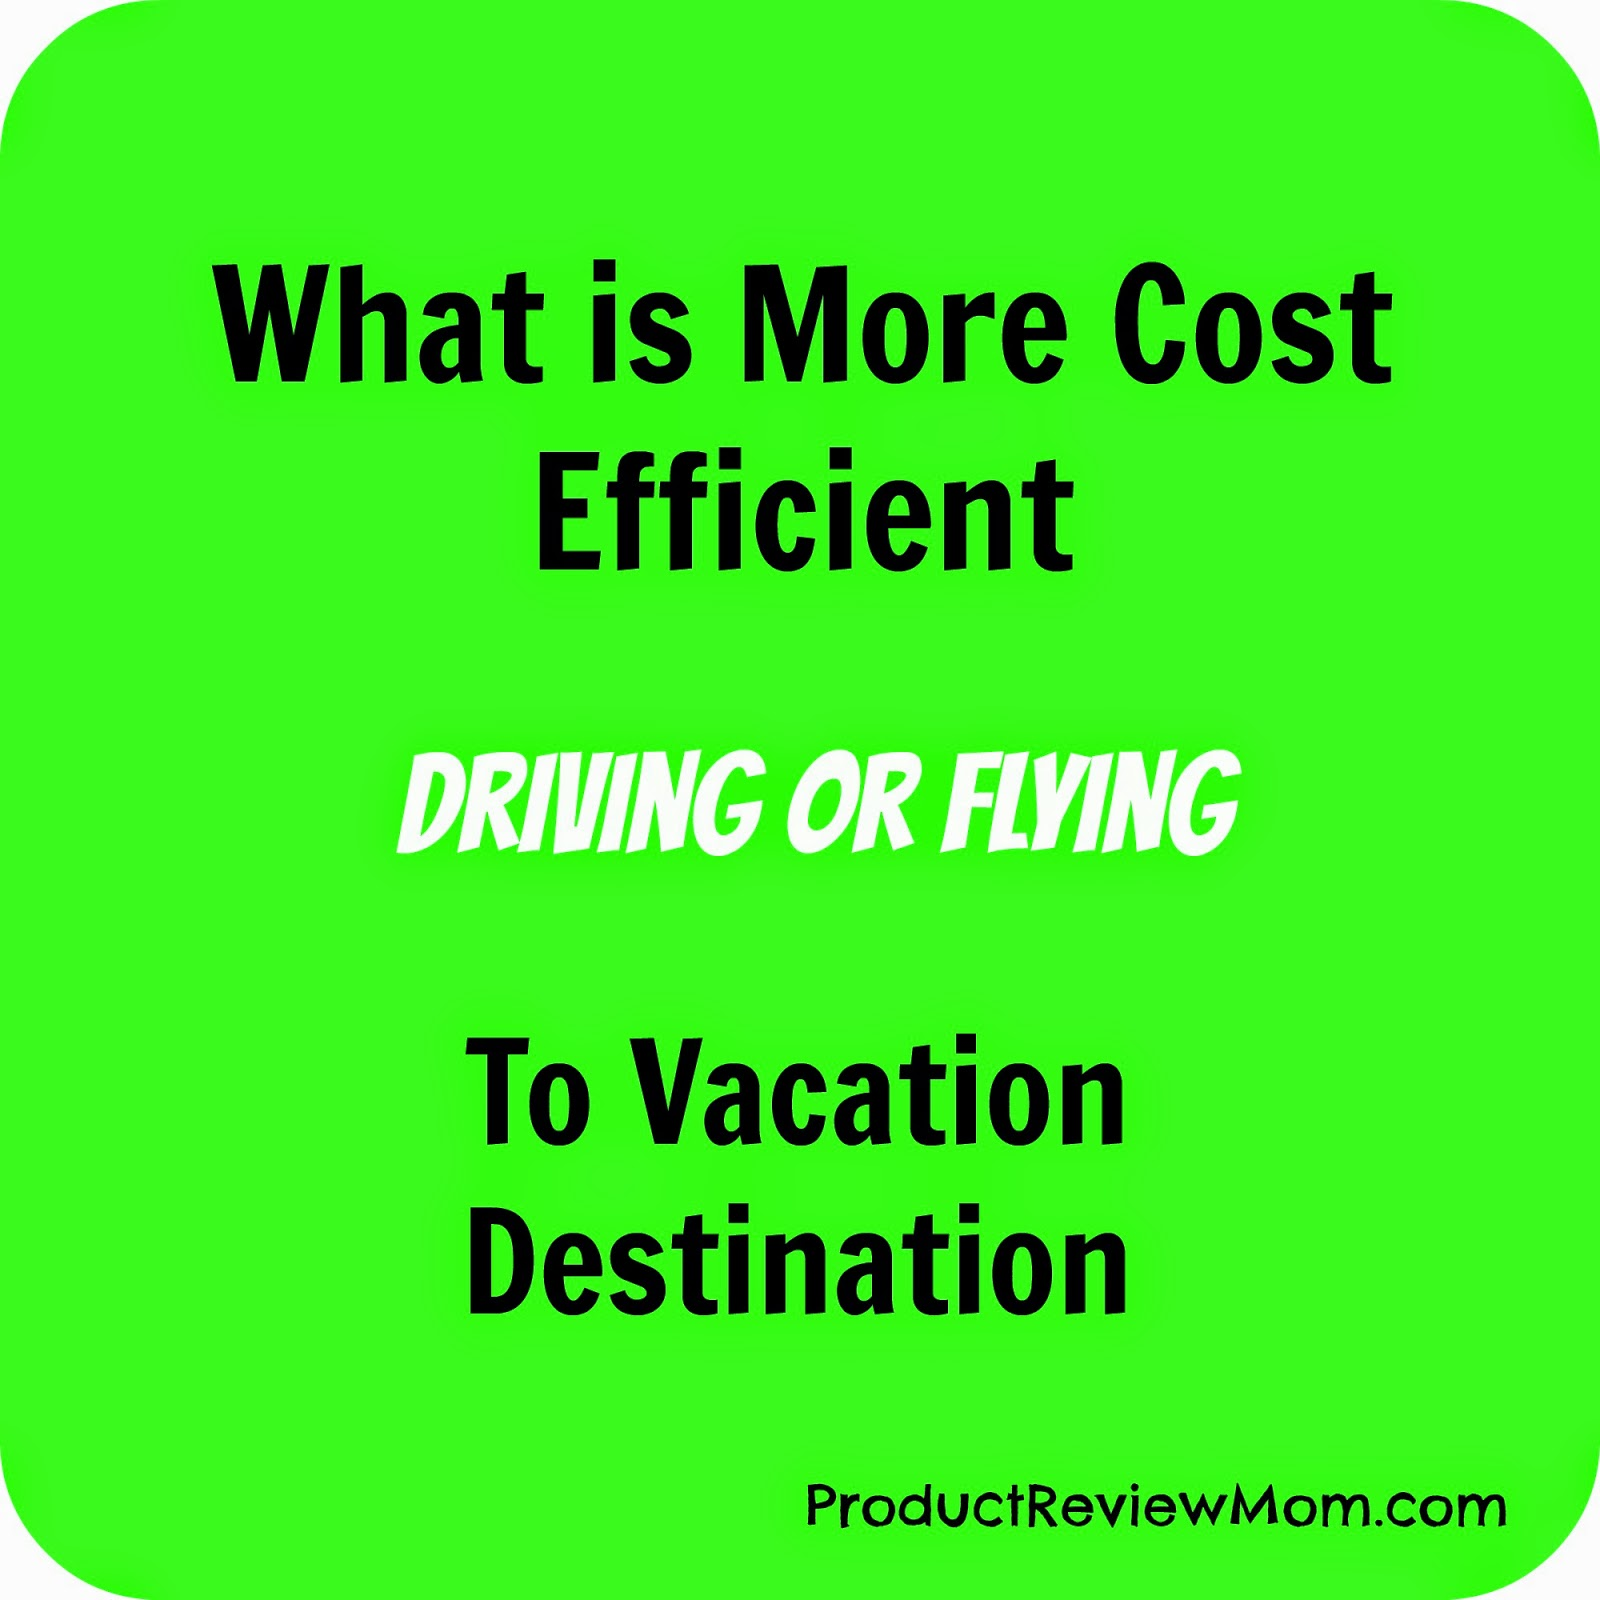 What is More Cost Efficient, Driving or Flying to Vacation Destination (Summer Blog Series) via ProductReviewMom.com